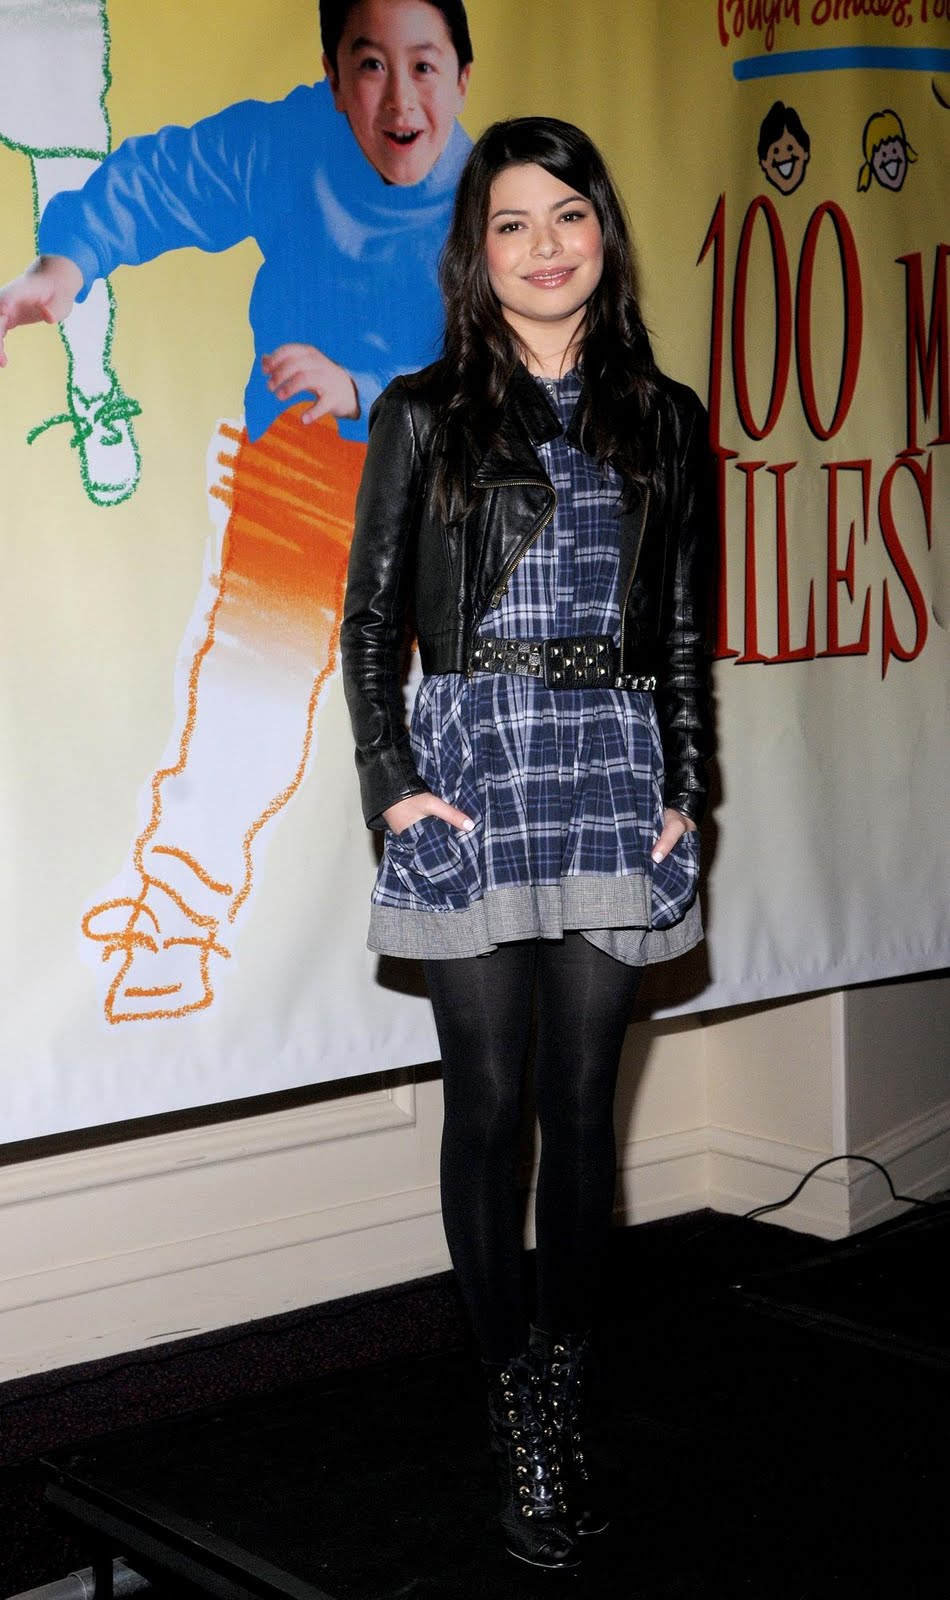 Pantyhose celebrities: Miranda Cosgrove in black pantyhose from pantyhose-celebrities.blogspot.com